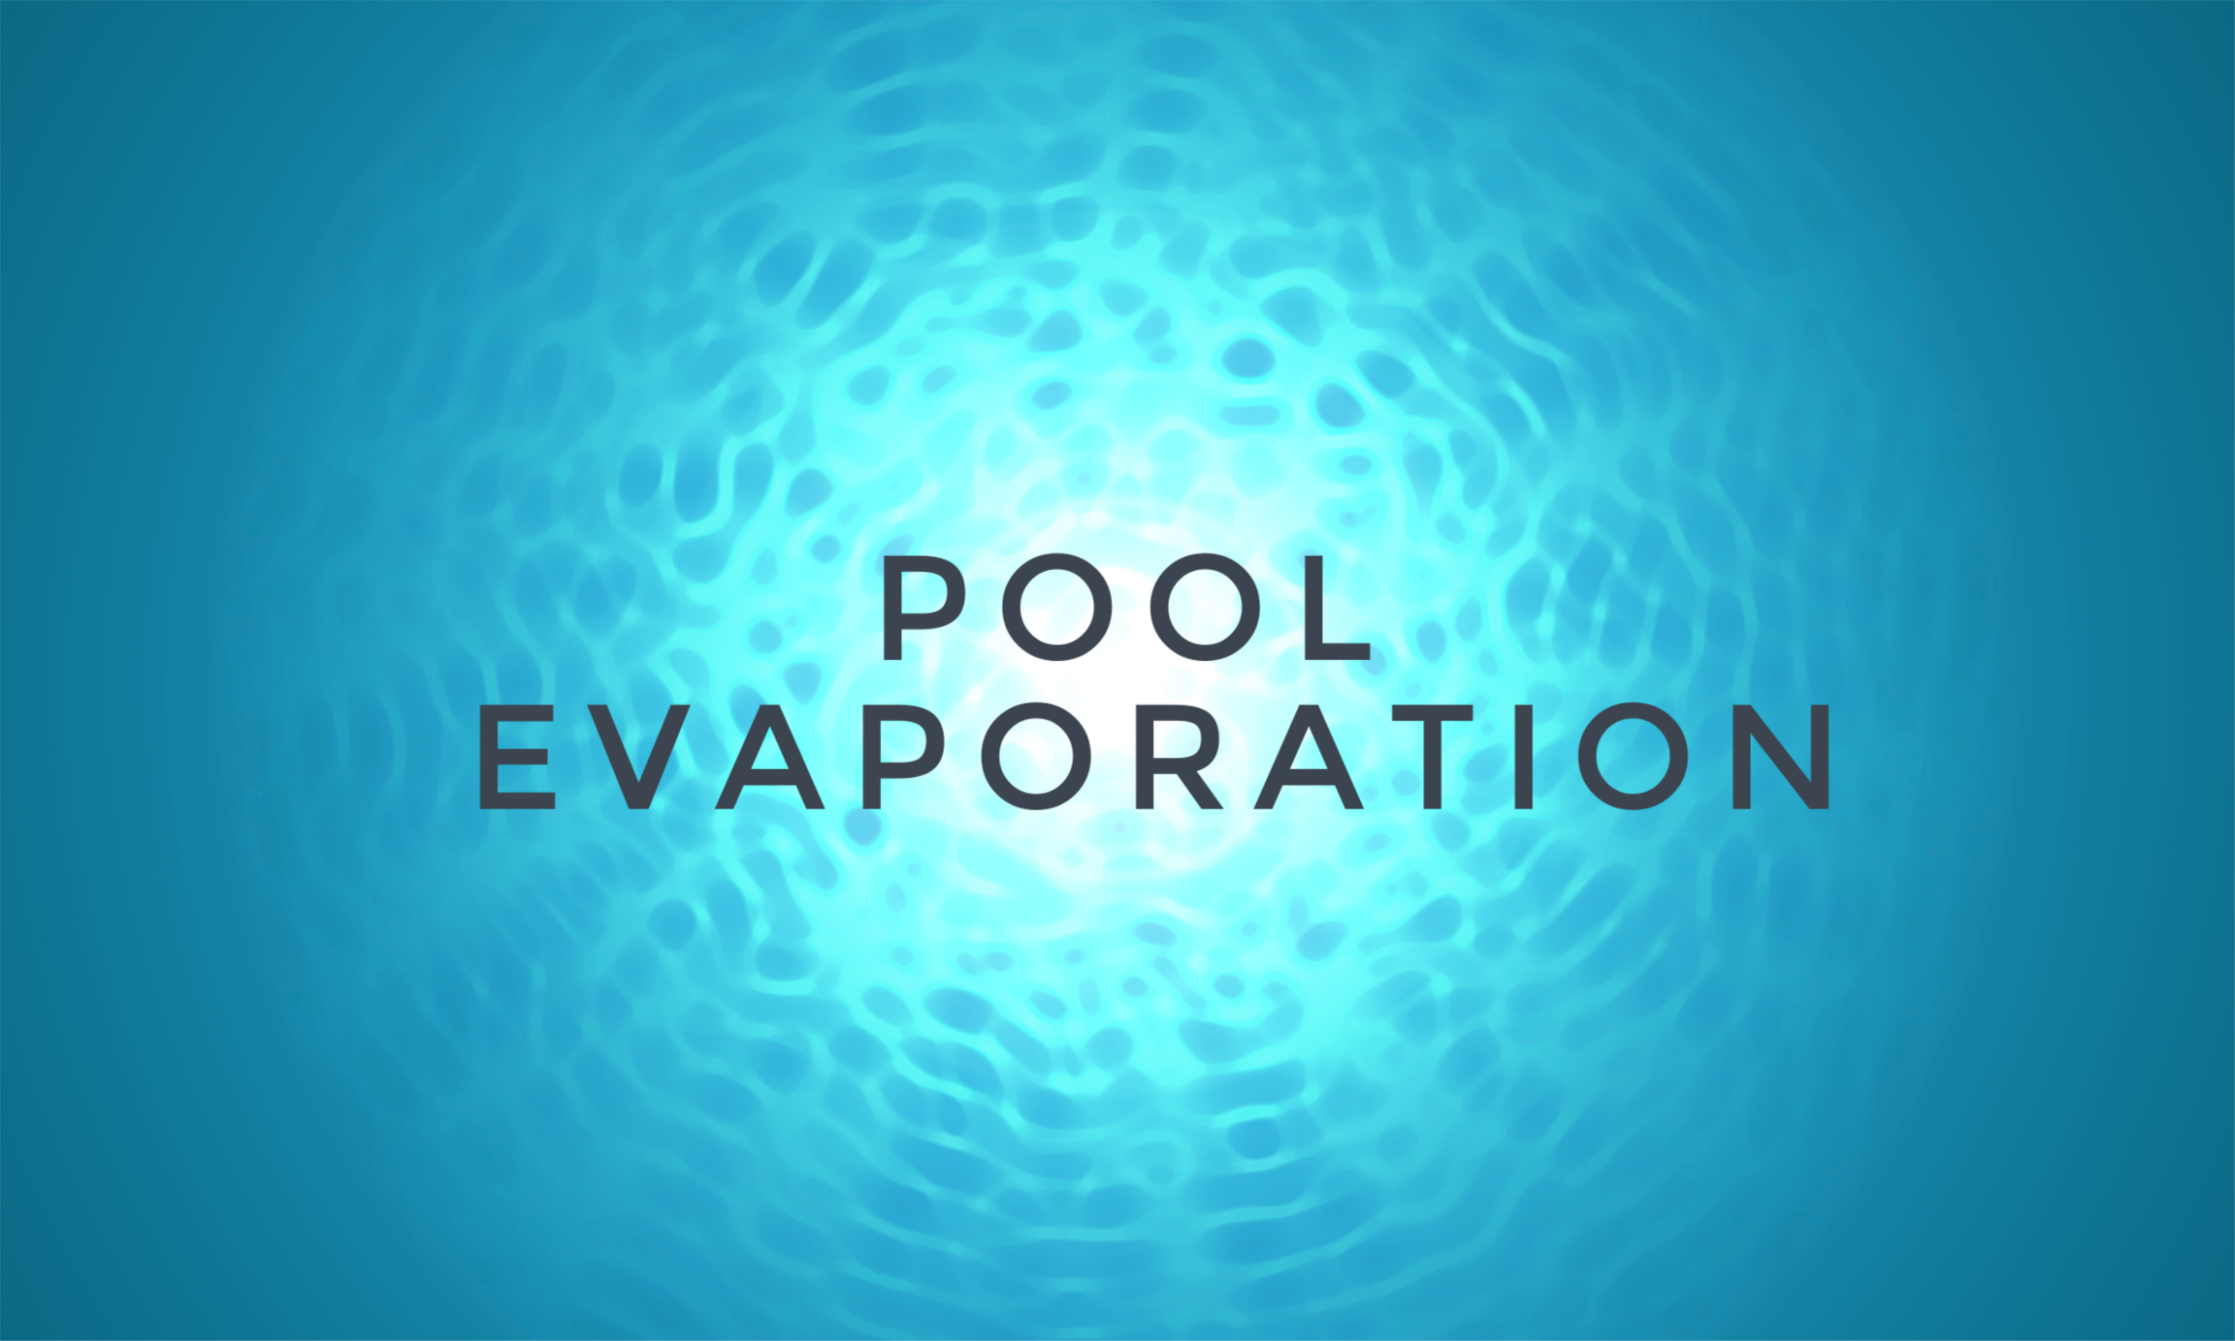 Pool Evaporation